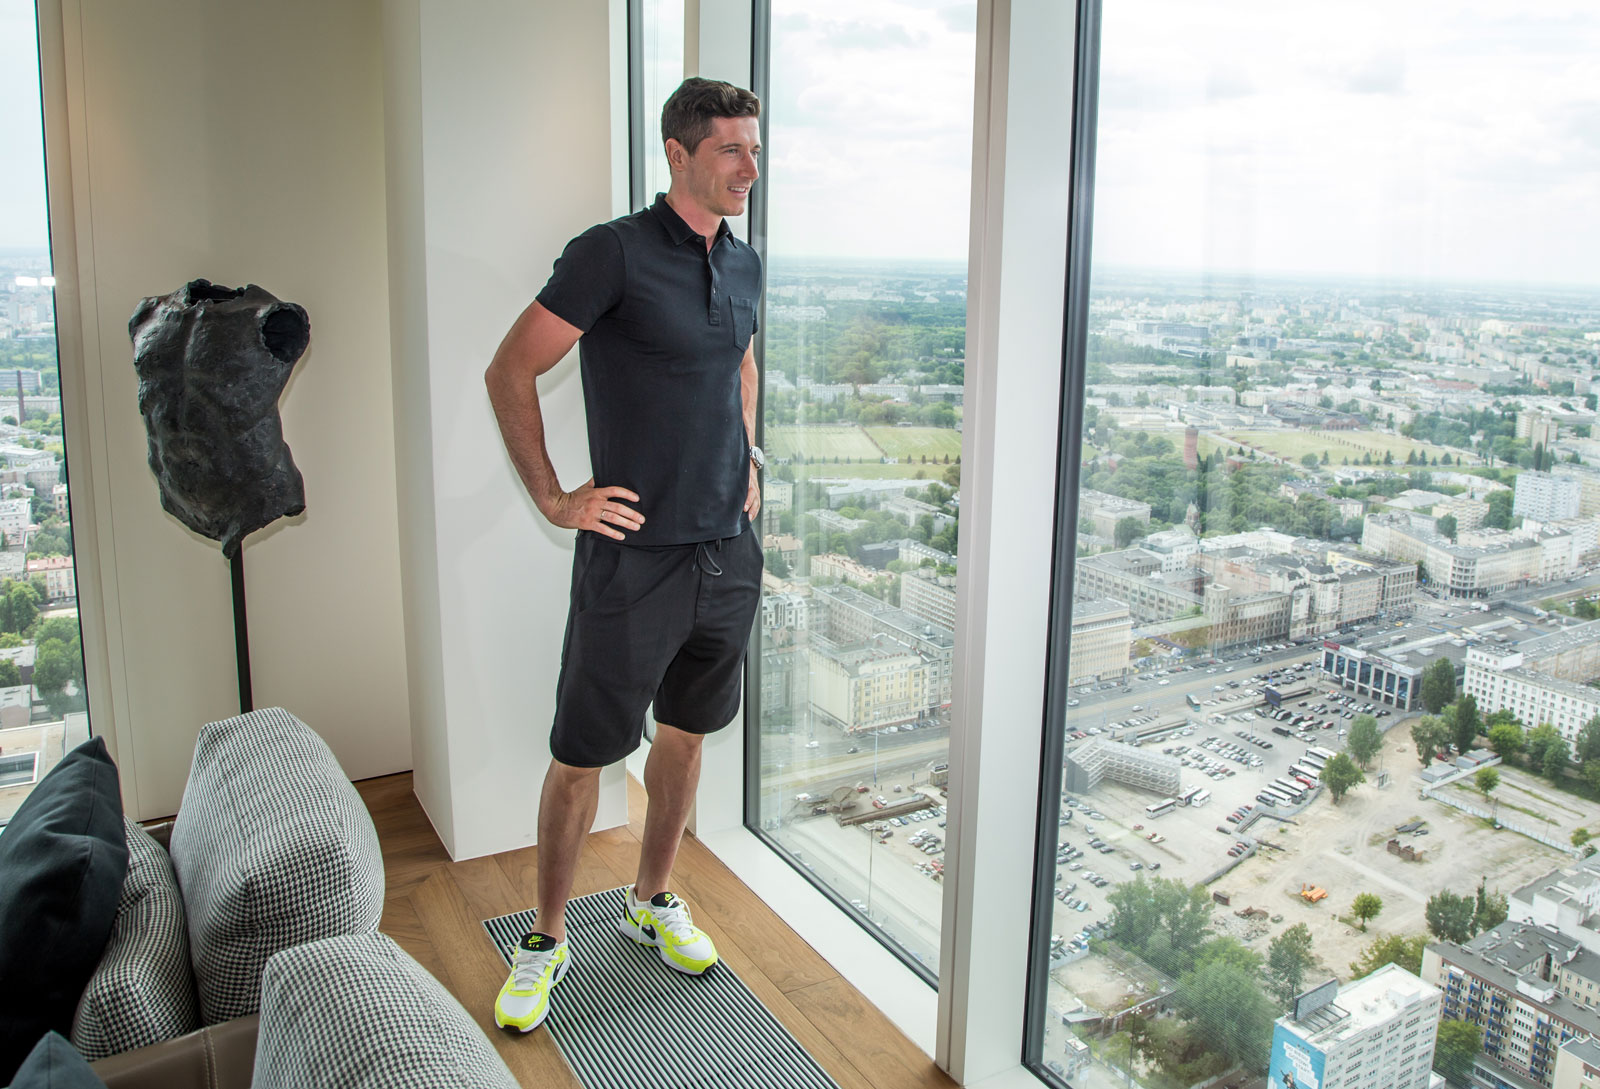 Robert Lewandowski admiring the view at Zlota 44